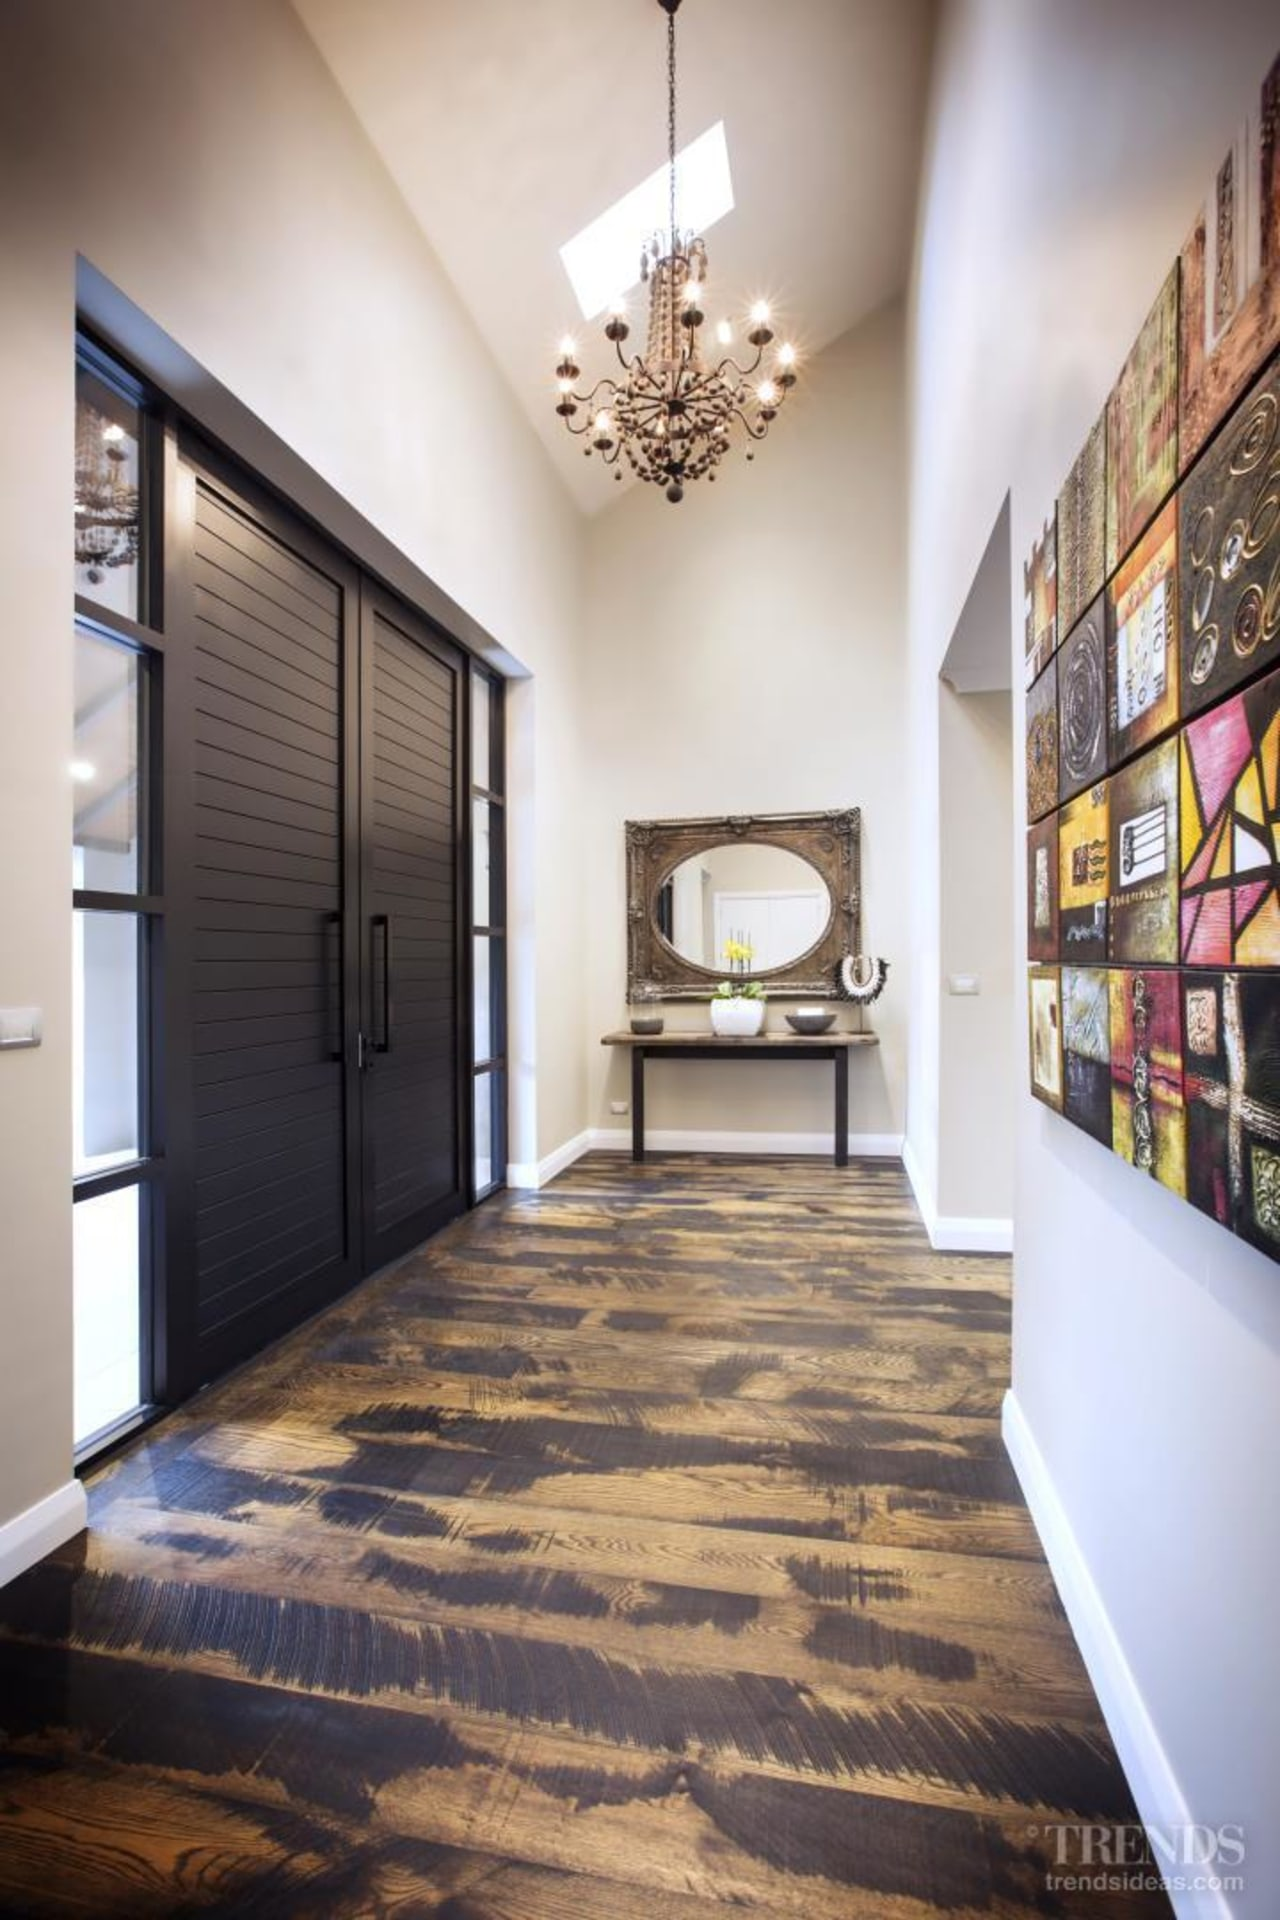 Windowmakers, with the owners and builder of this ceiling, floor, flooring, hardwood, home, interior design, laminate flooring, lobby, real estate, wood flooring, gray